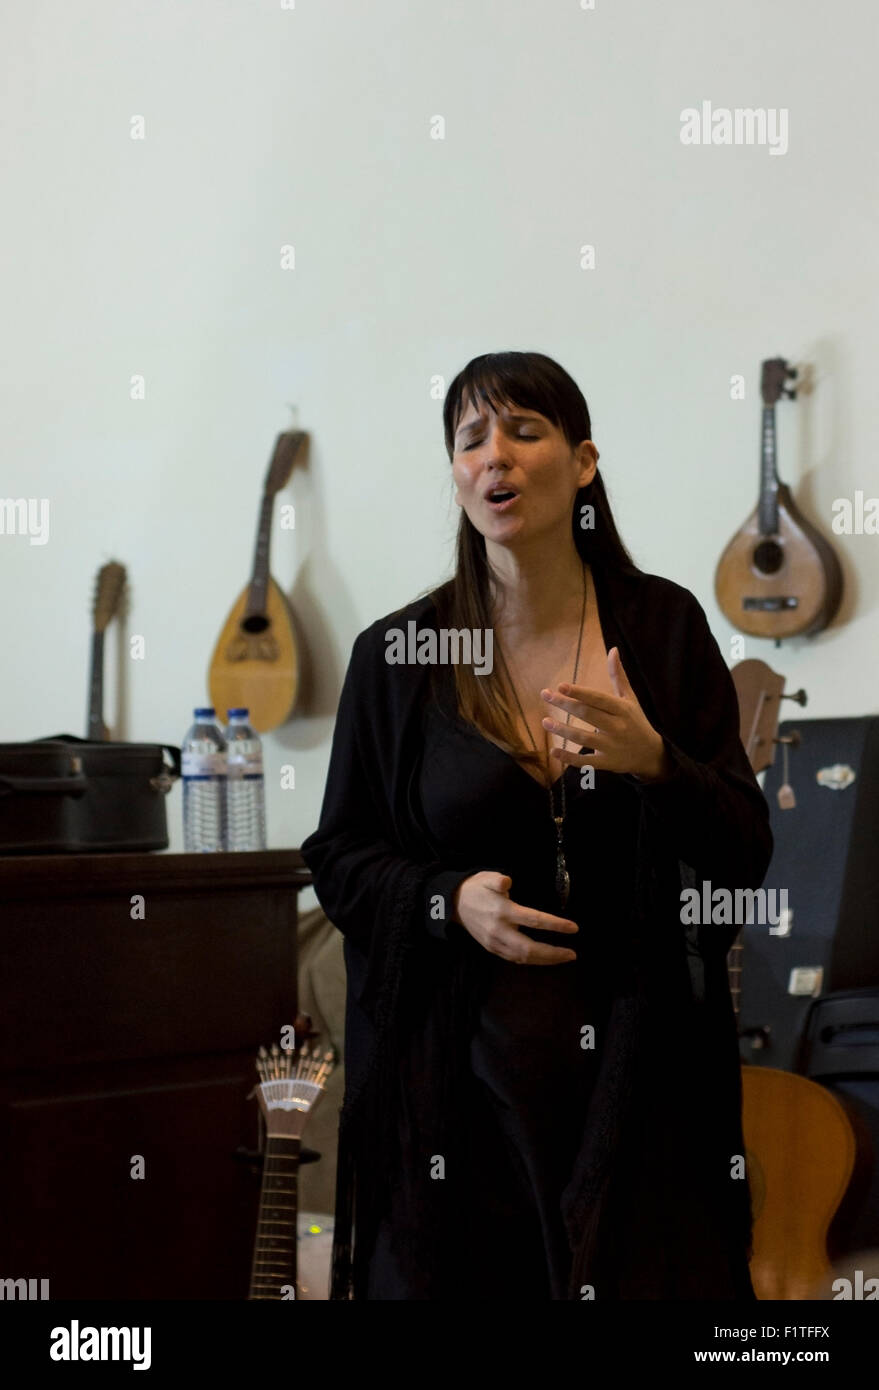 A woman sings Fado, Portugal's traditional music genre. - Stock Image